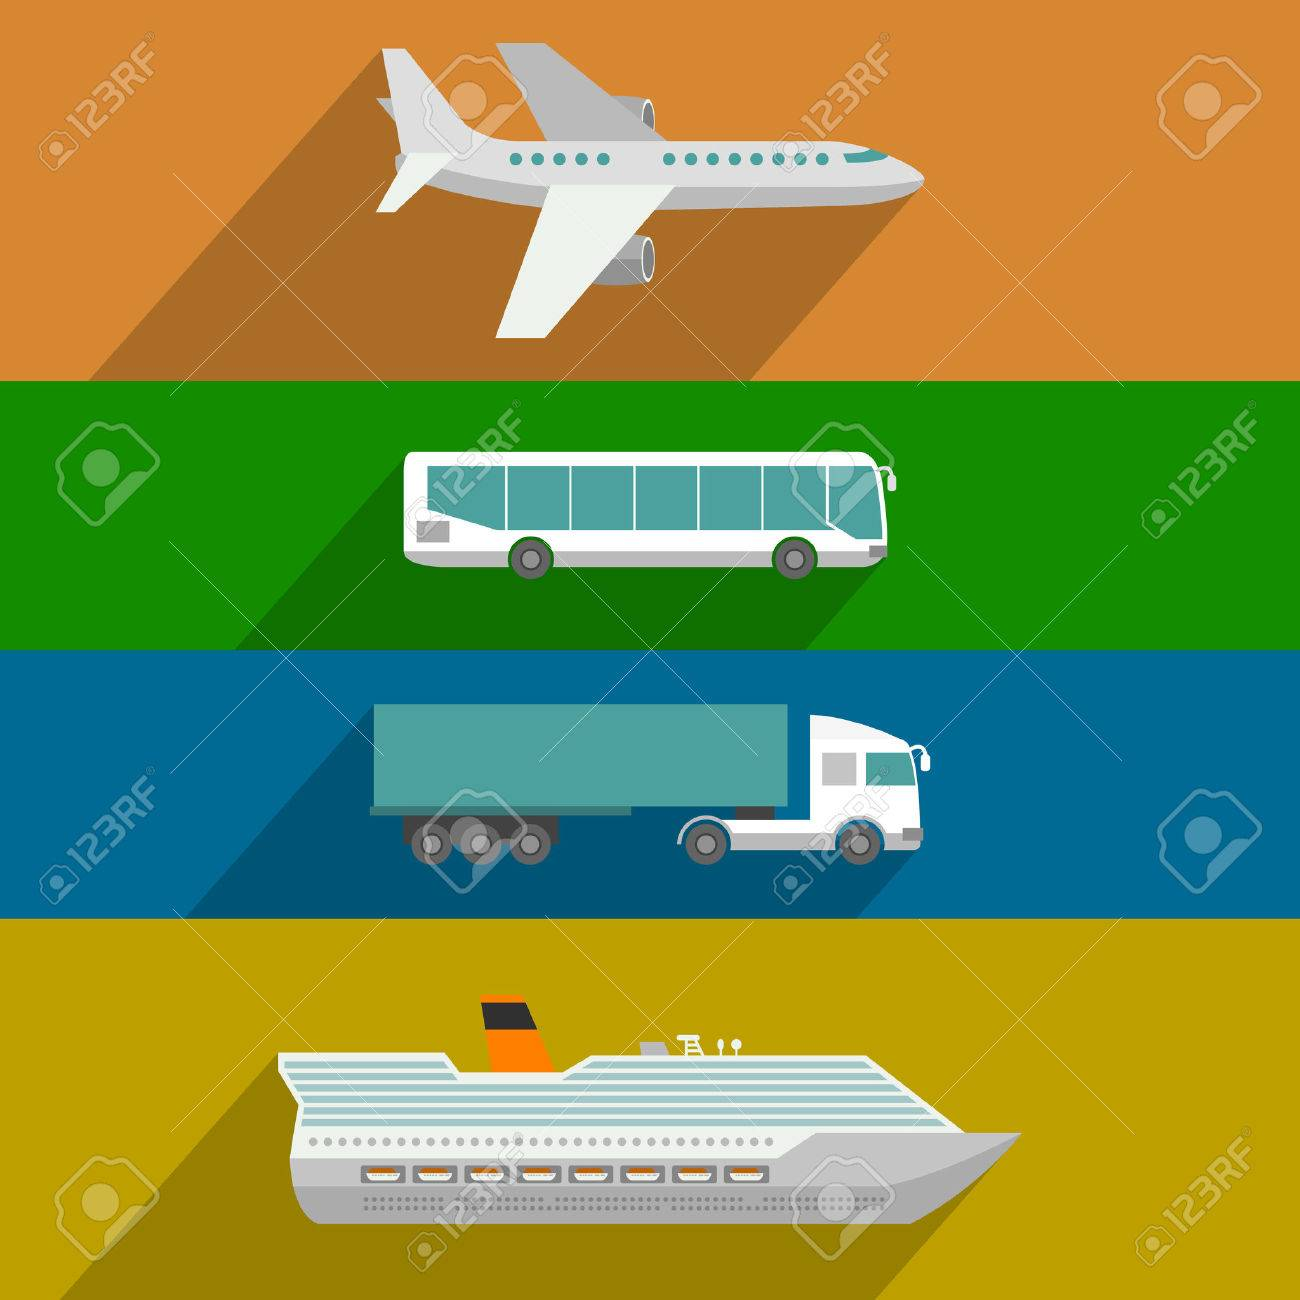 Global transportation. Plane, cruise liner, bus and truck icons. Flat design illustration Stock Vector - 42339177